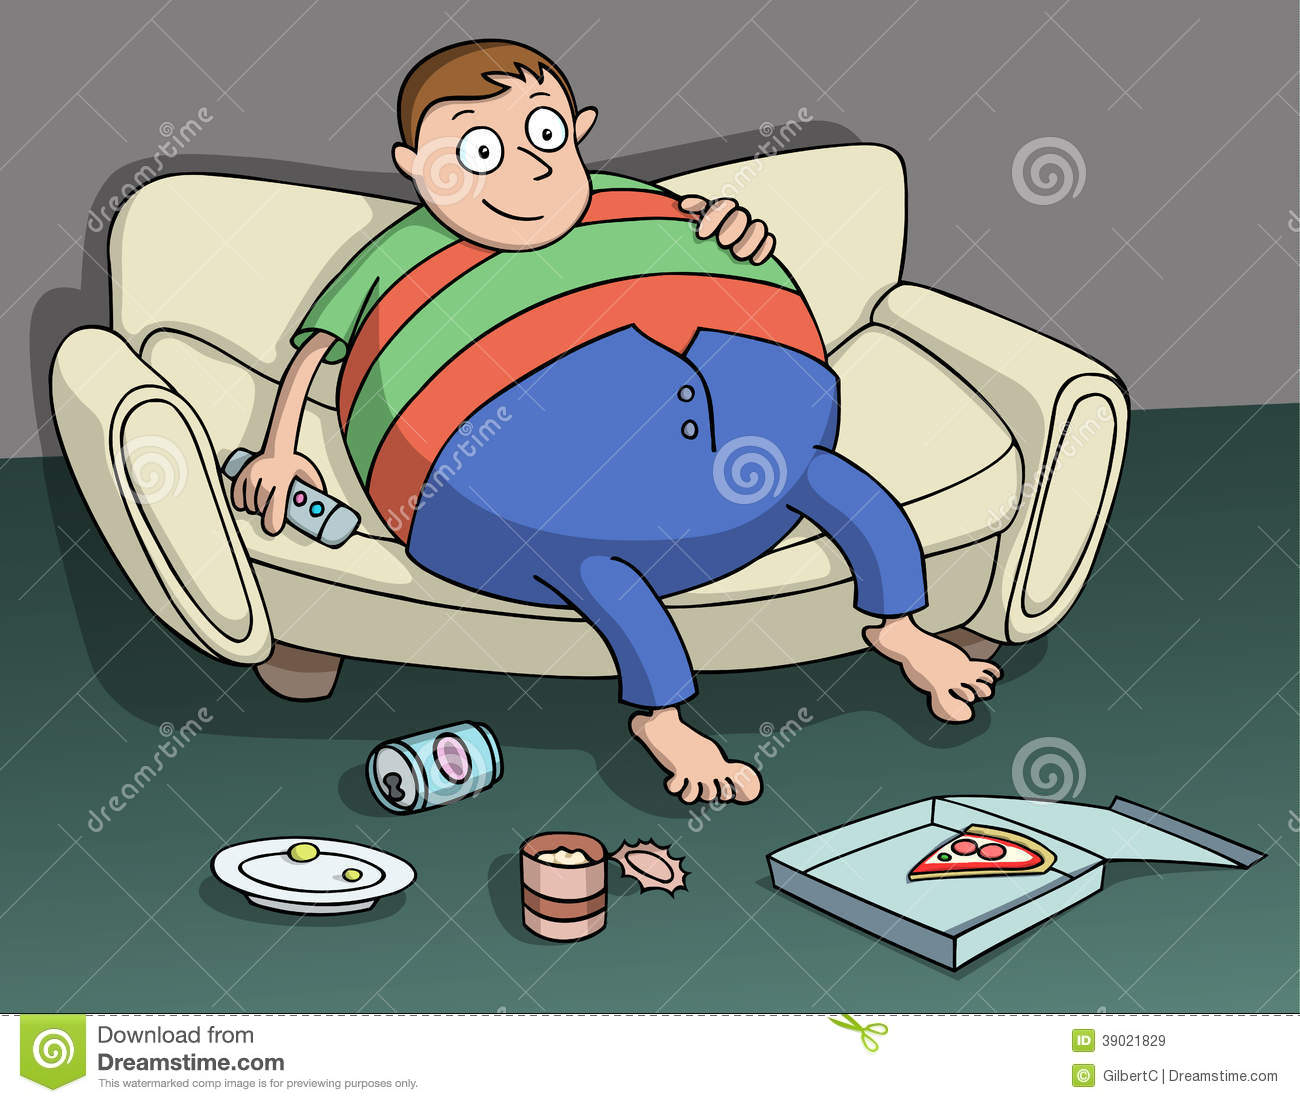 hight resolution of very overweight man sitting on the couch holding a remote in hand beer pizza and other food over the floor couch potato cartoon vector illustration